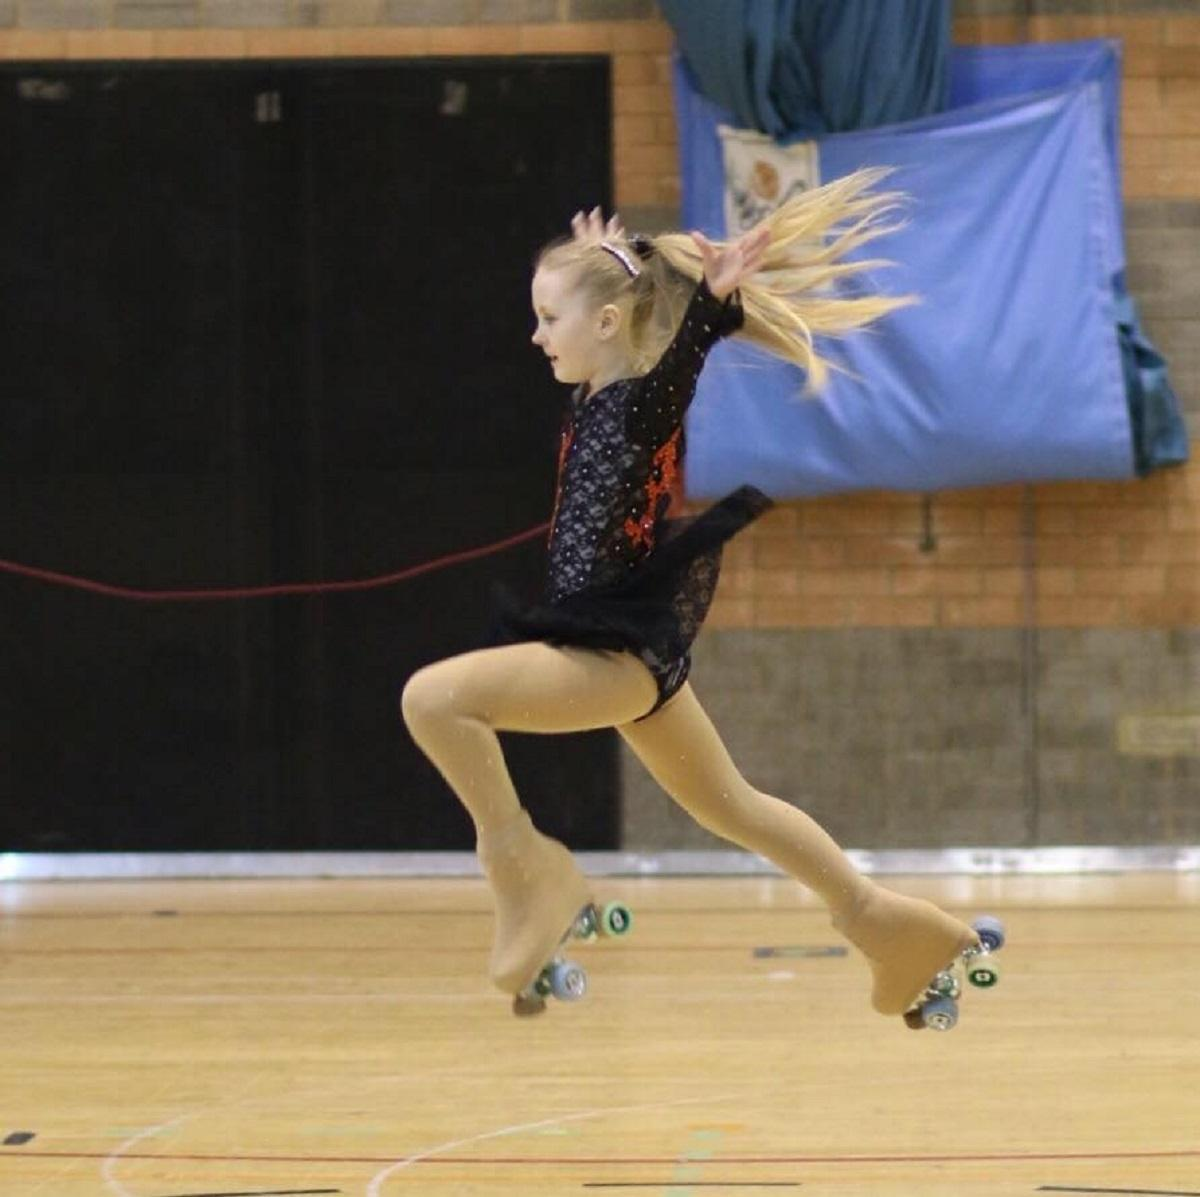 Roller skating hazel grove - Bolton Skaters On A Roll After National And International Success Jessica Heyes Competing For Bolton Artistic Roller Skating Club